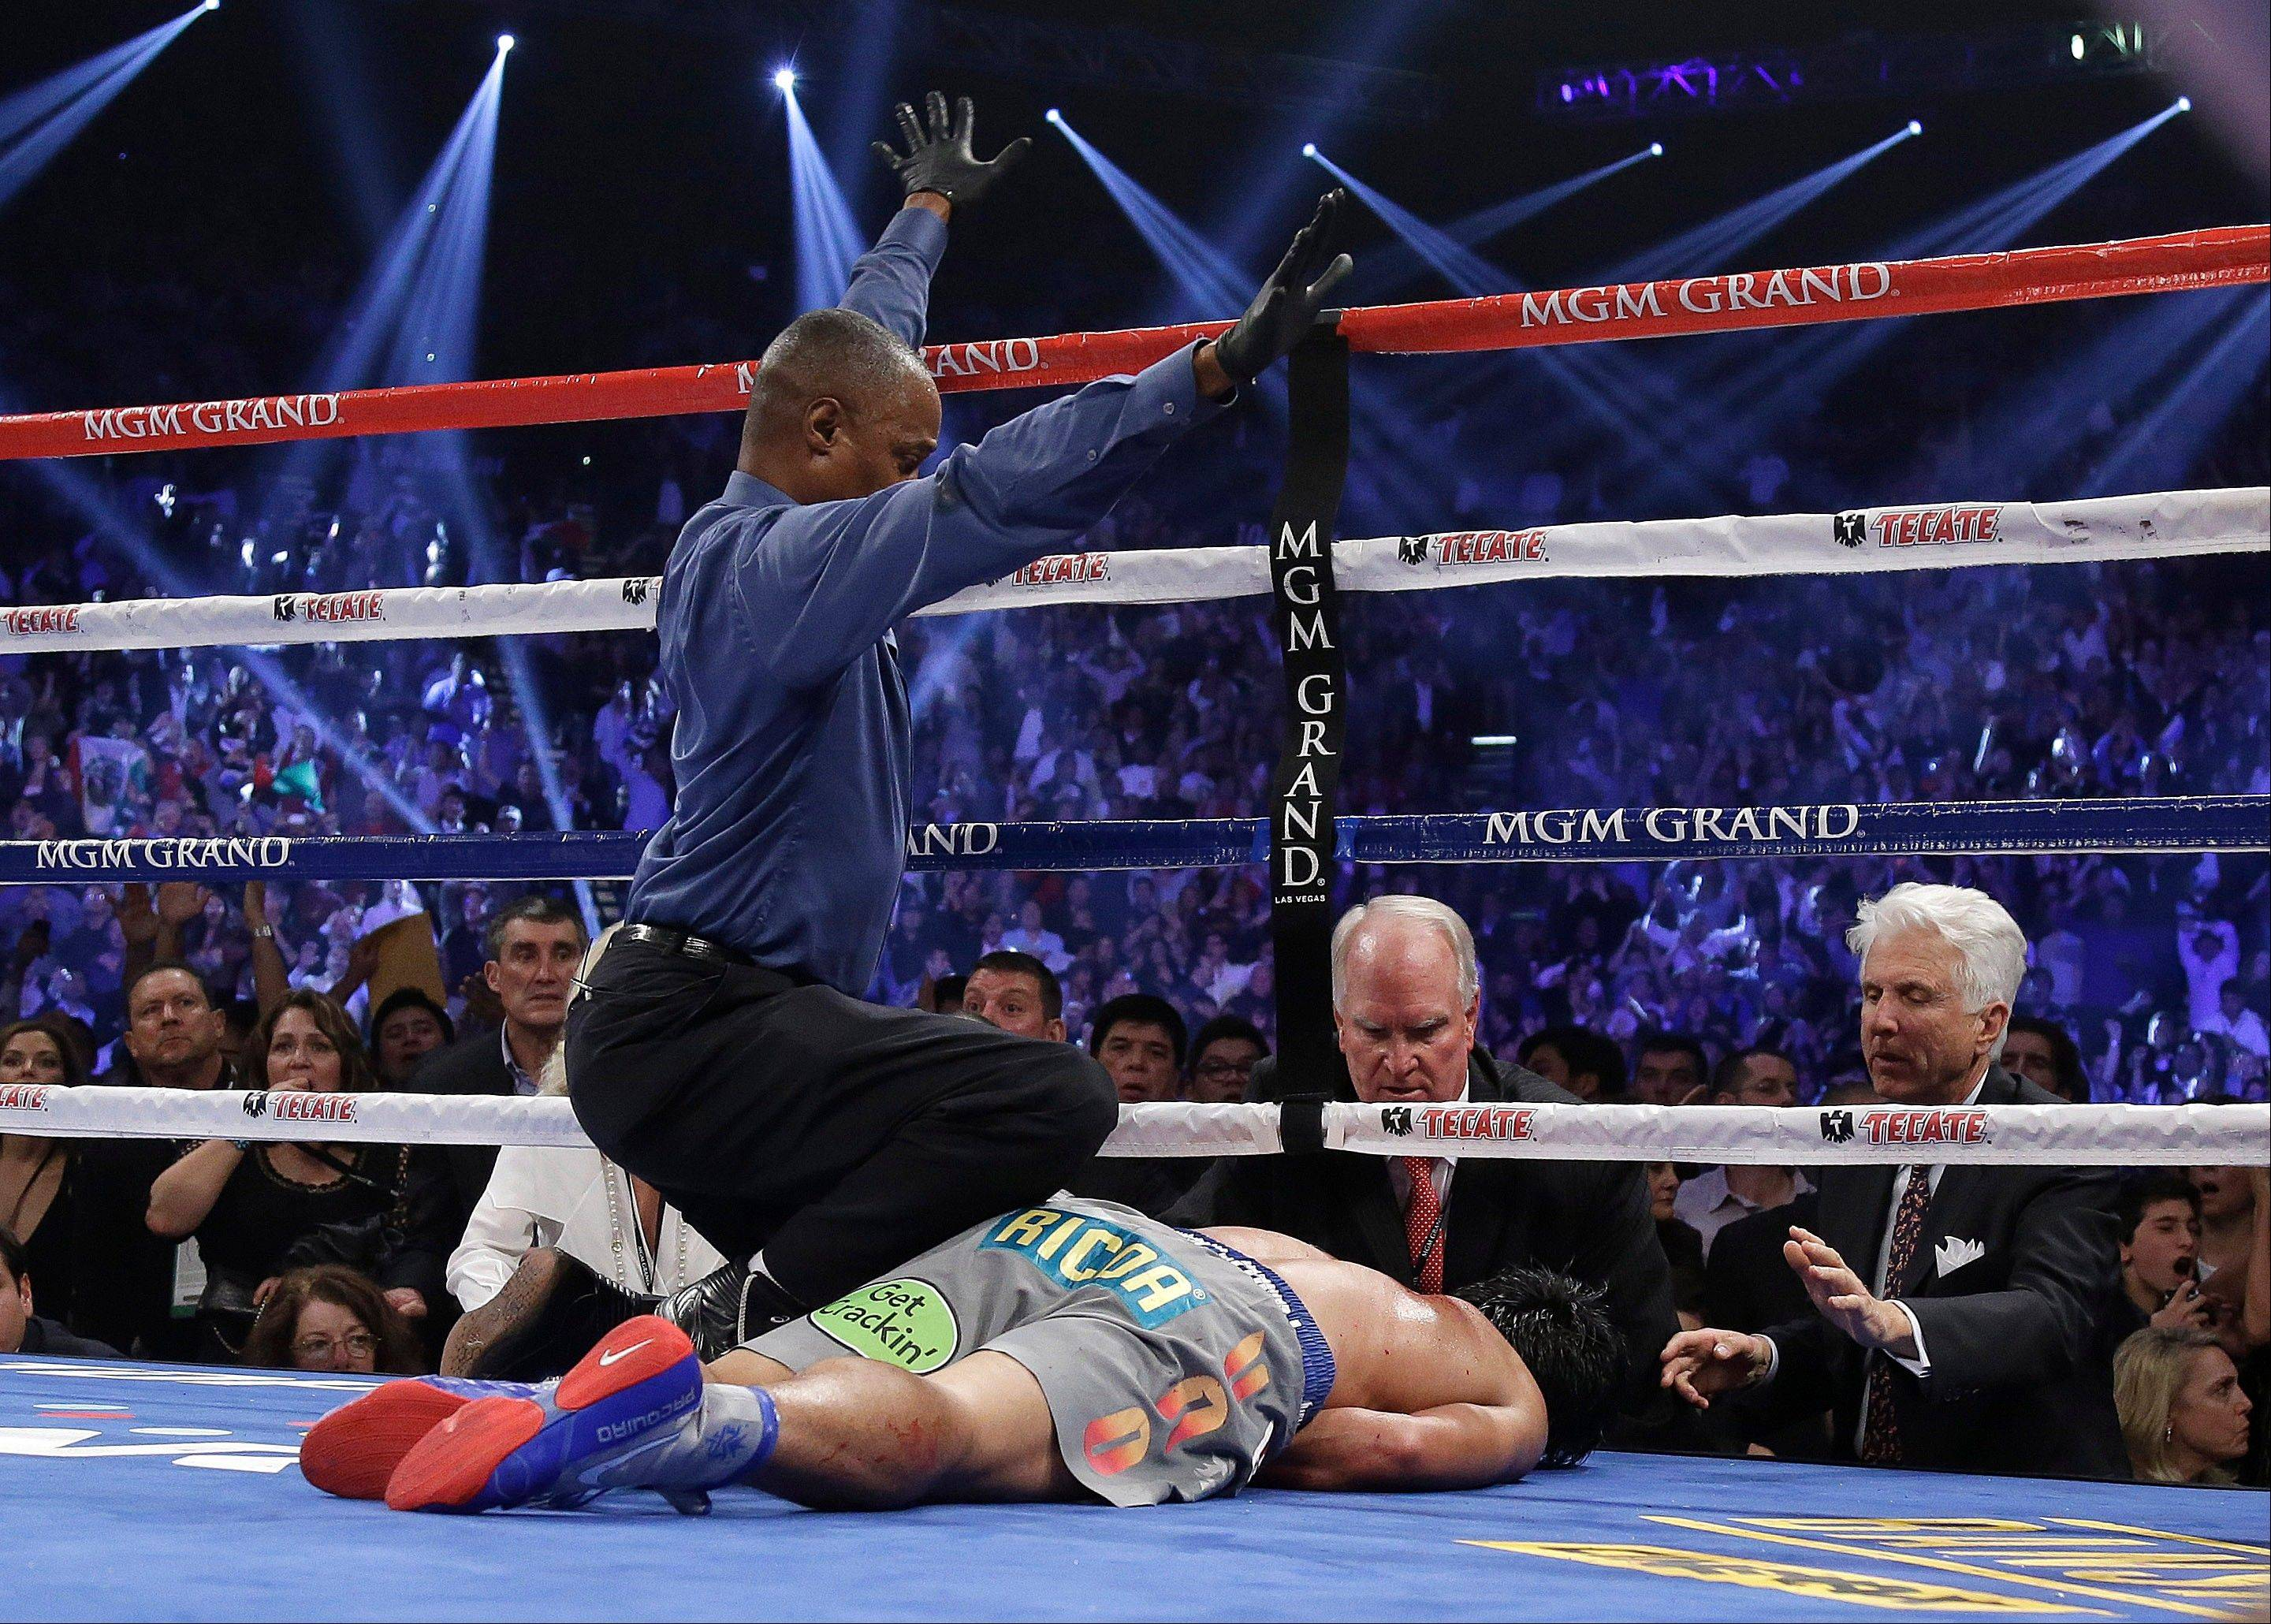 Referee Kenny Bayless calls the fight as he kneels over Manny Pacquiao after he was knocked out by Juan Manuel Marquez.